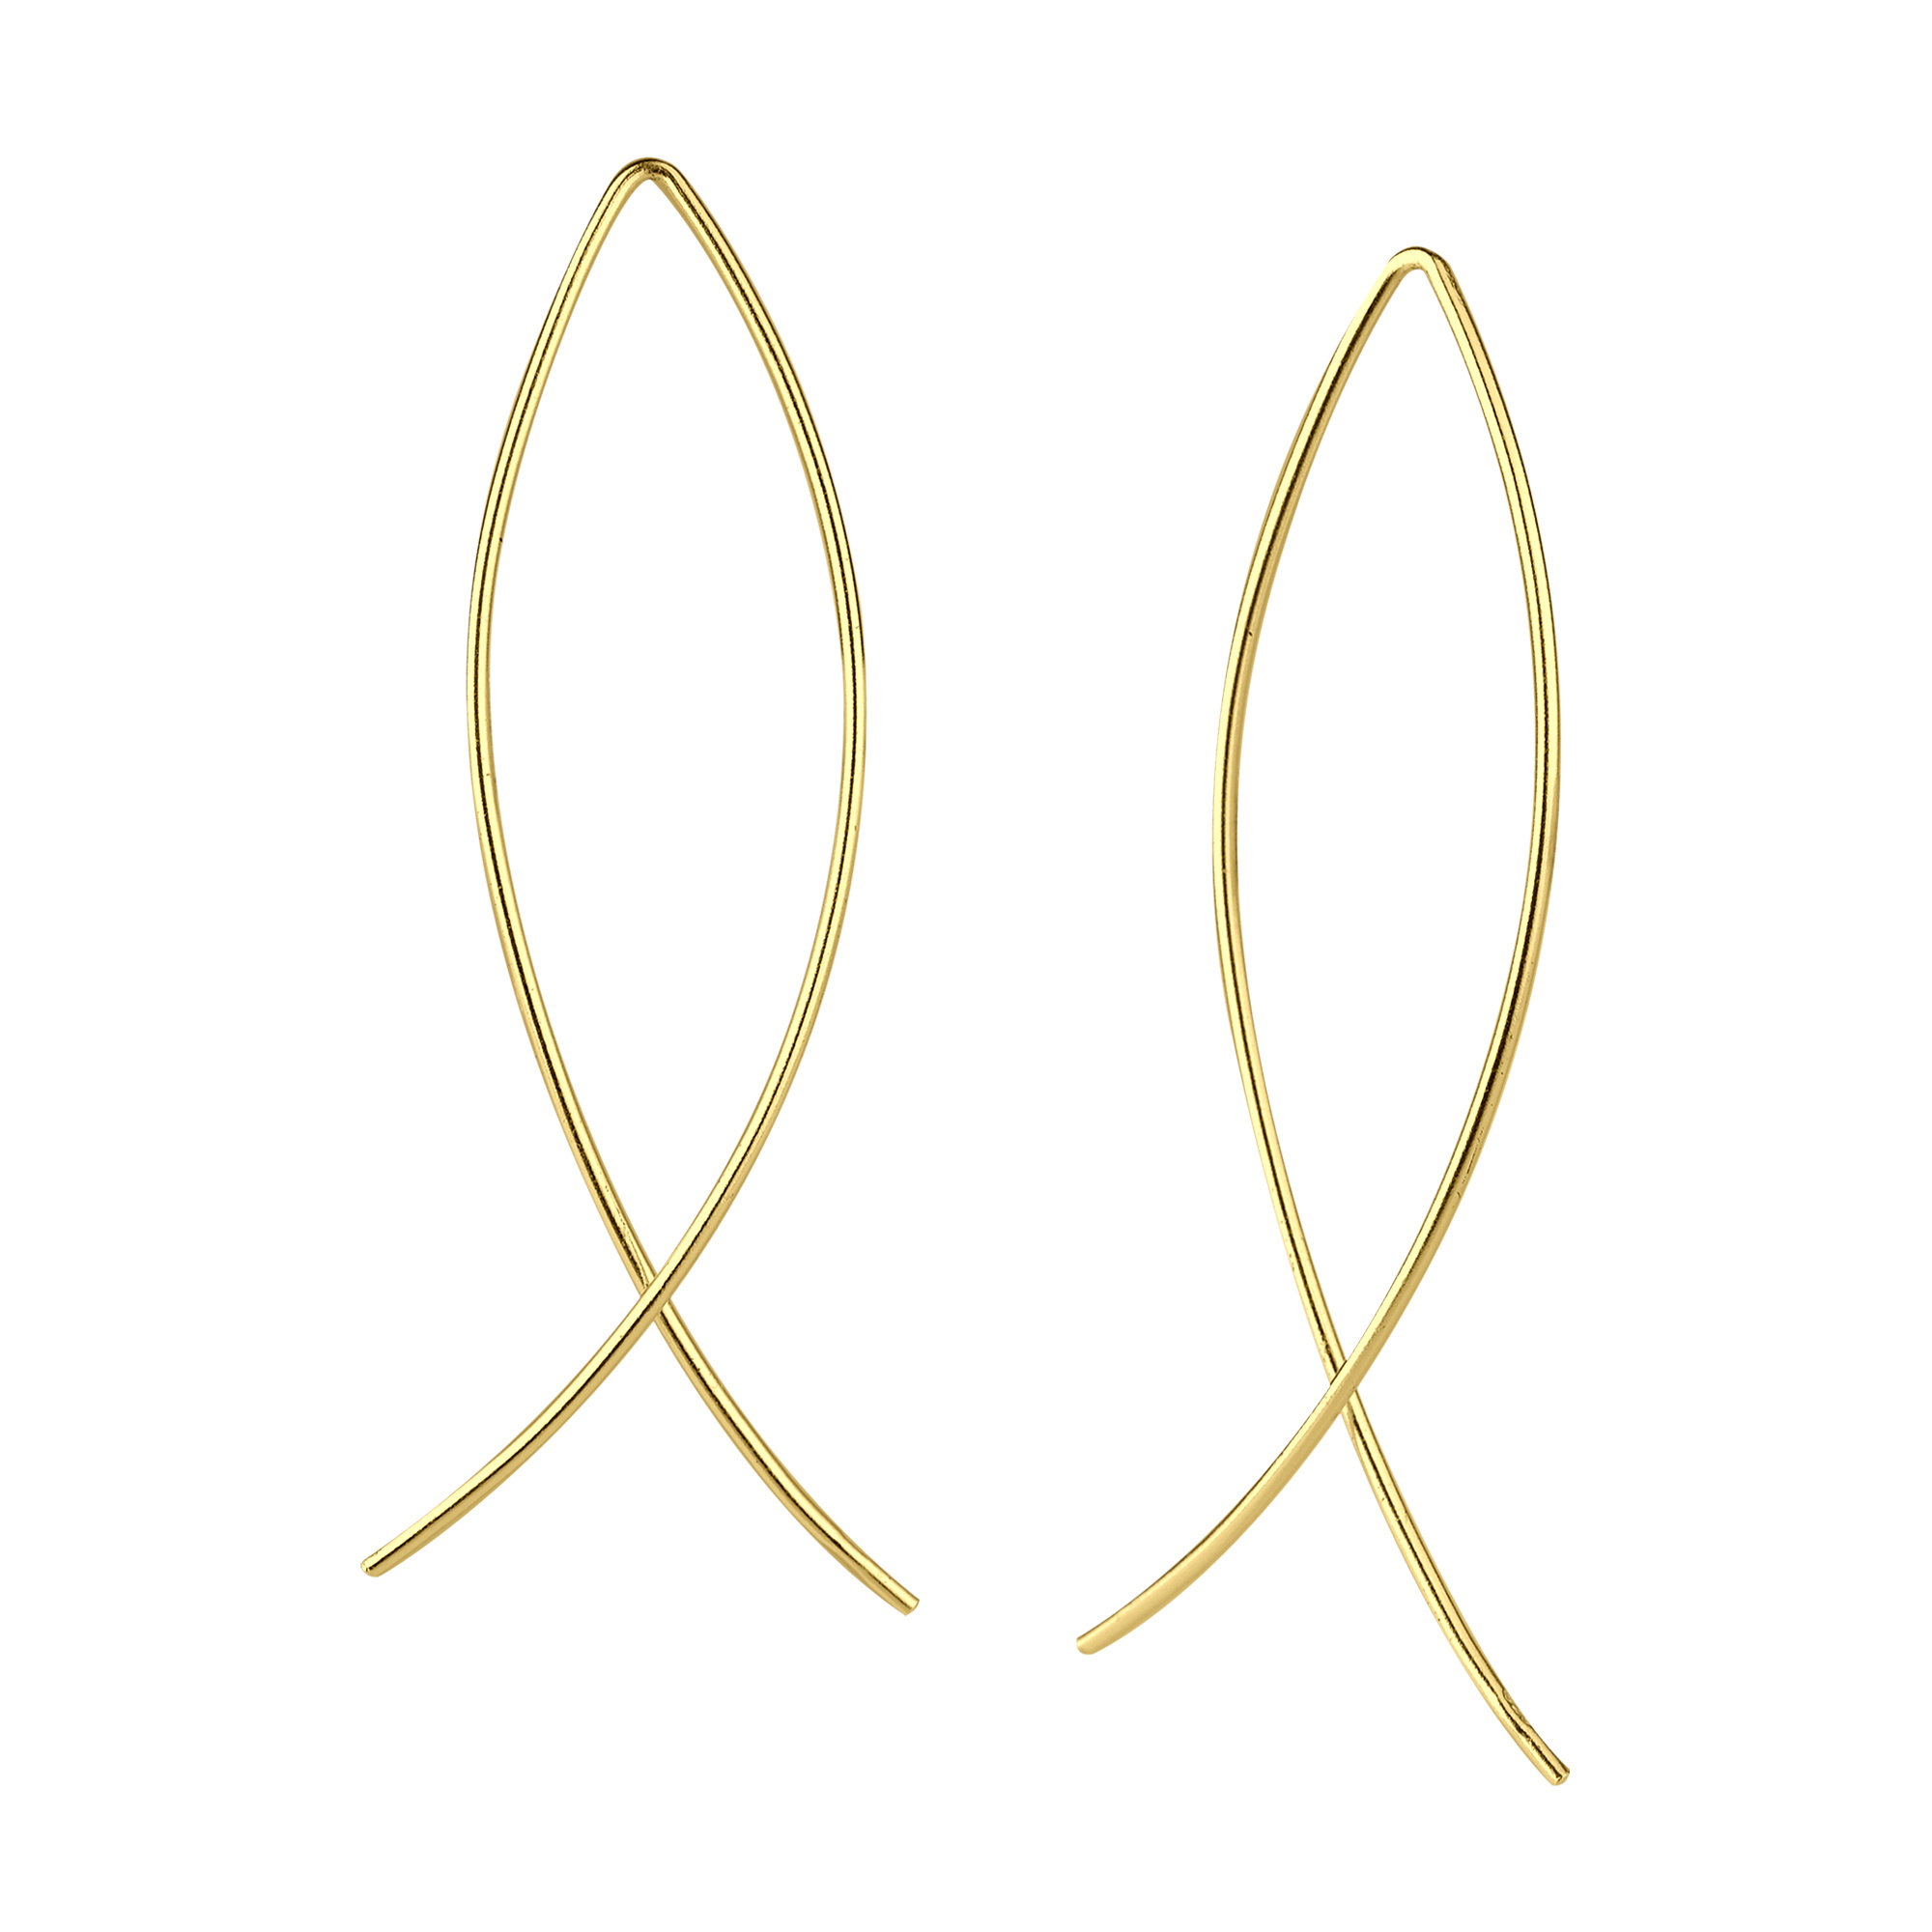 Puristic earring made of 925 sterling silver - gold-1